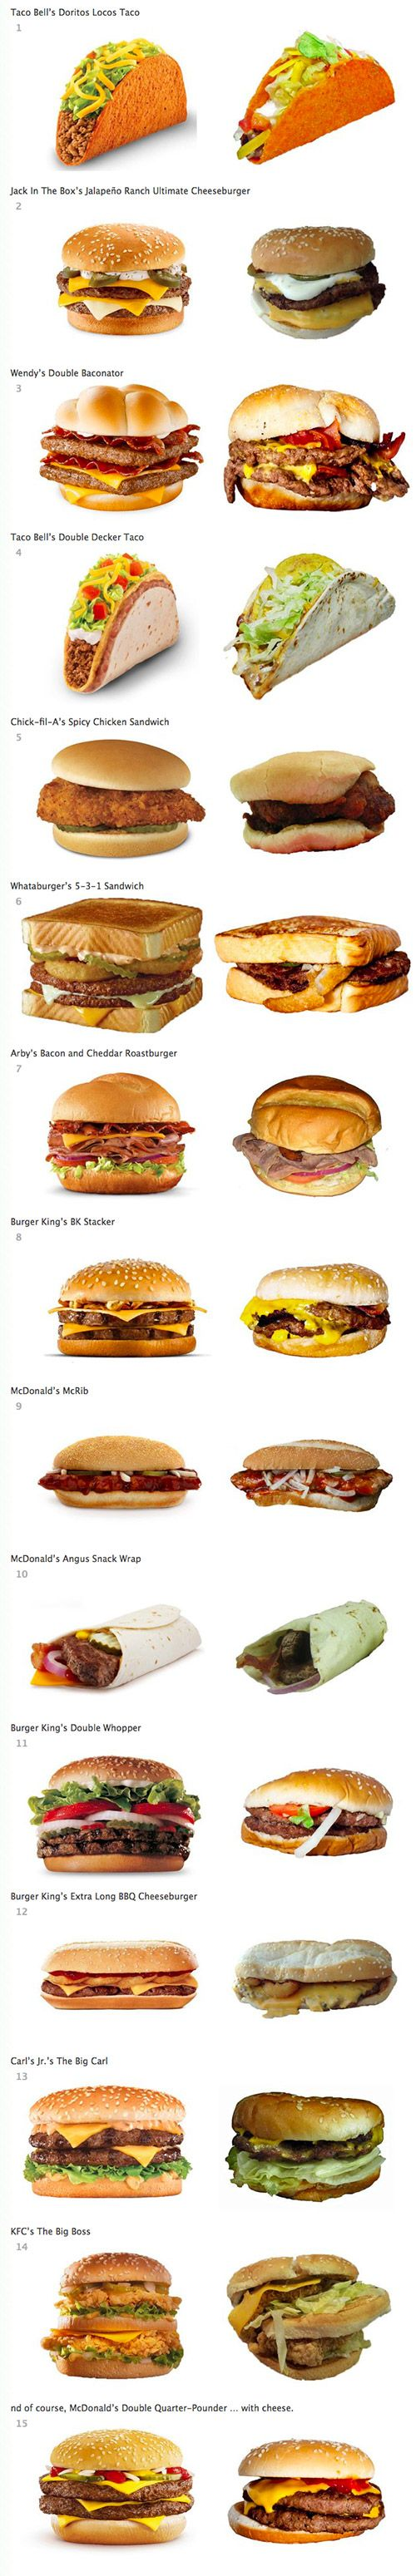 The deceptive reality of fast food advertising...